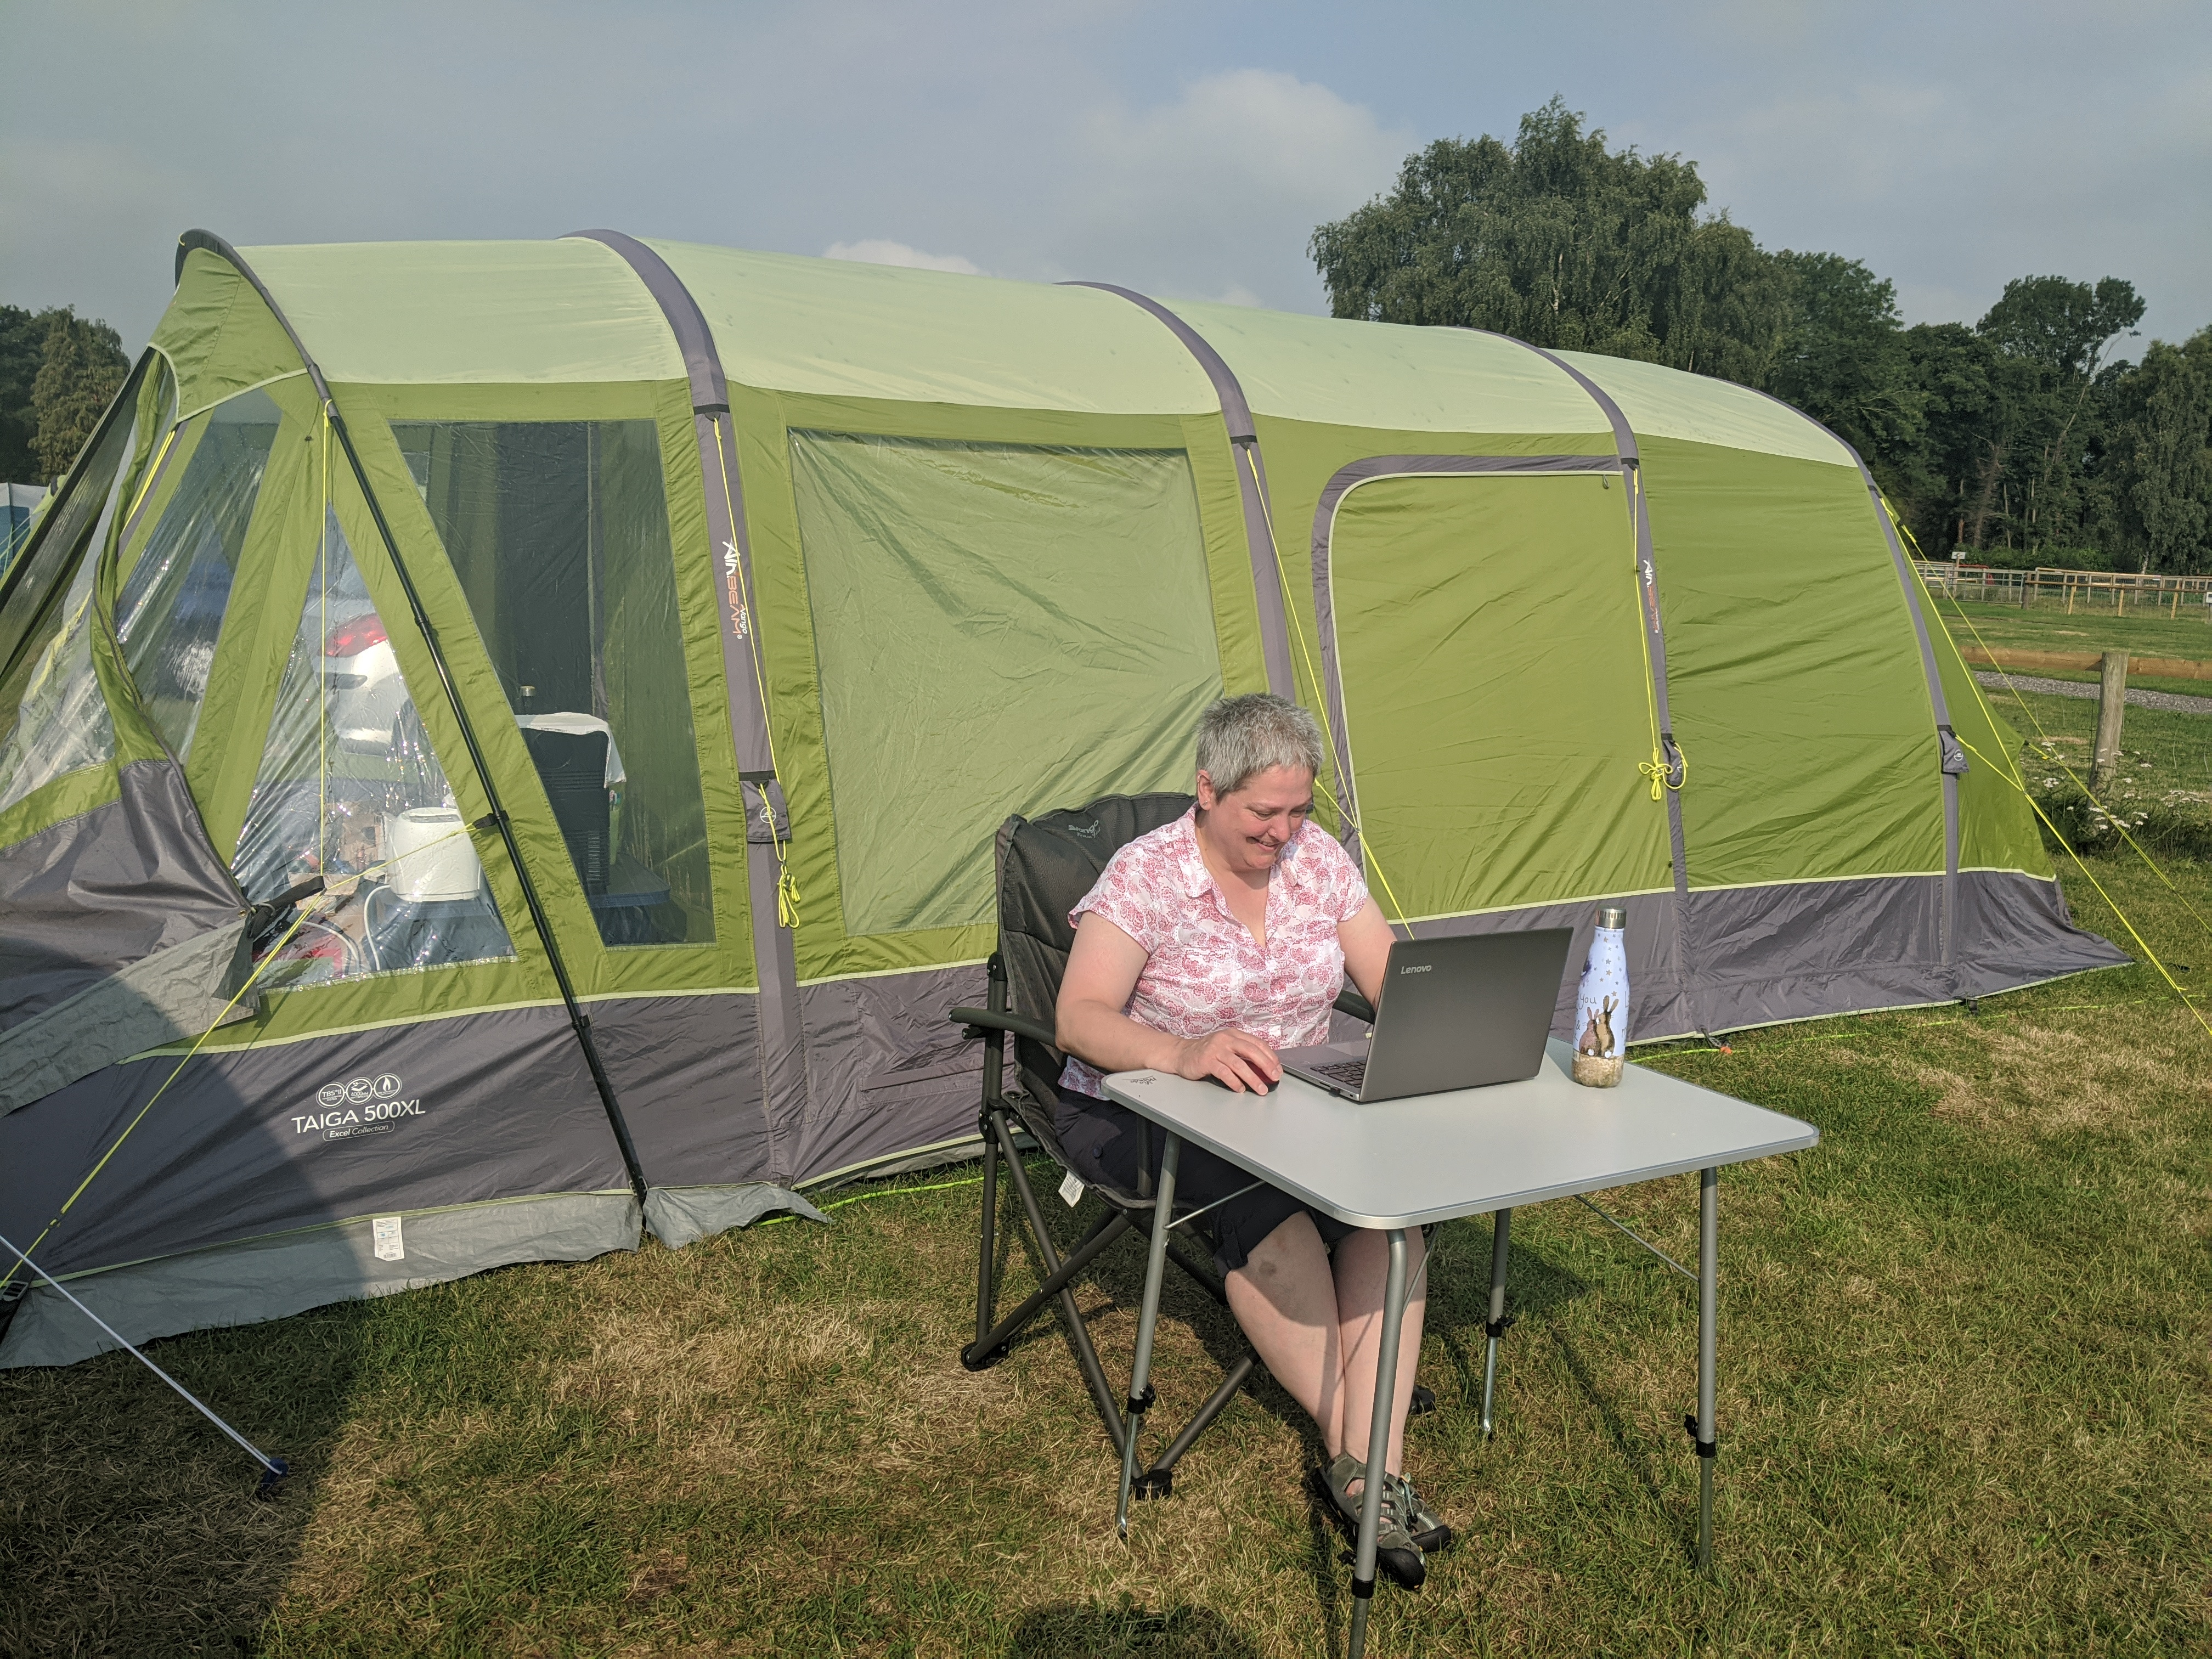 Above: Marple Stationery Supplies' Sarah Laker, judging The Henries while on her family camping holiday!